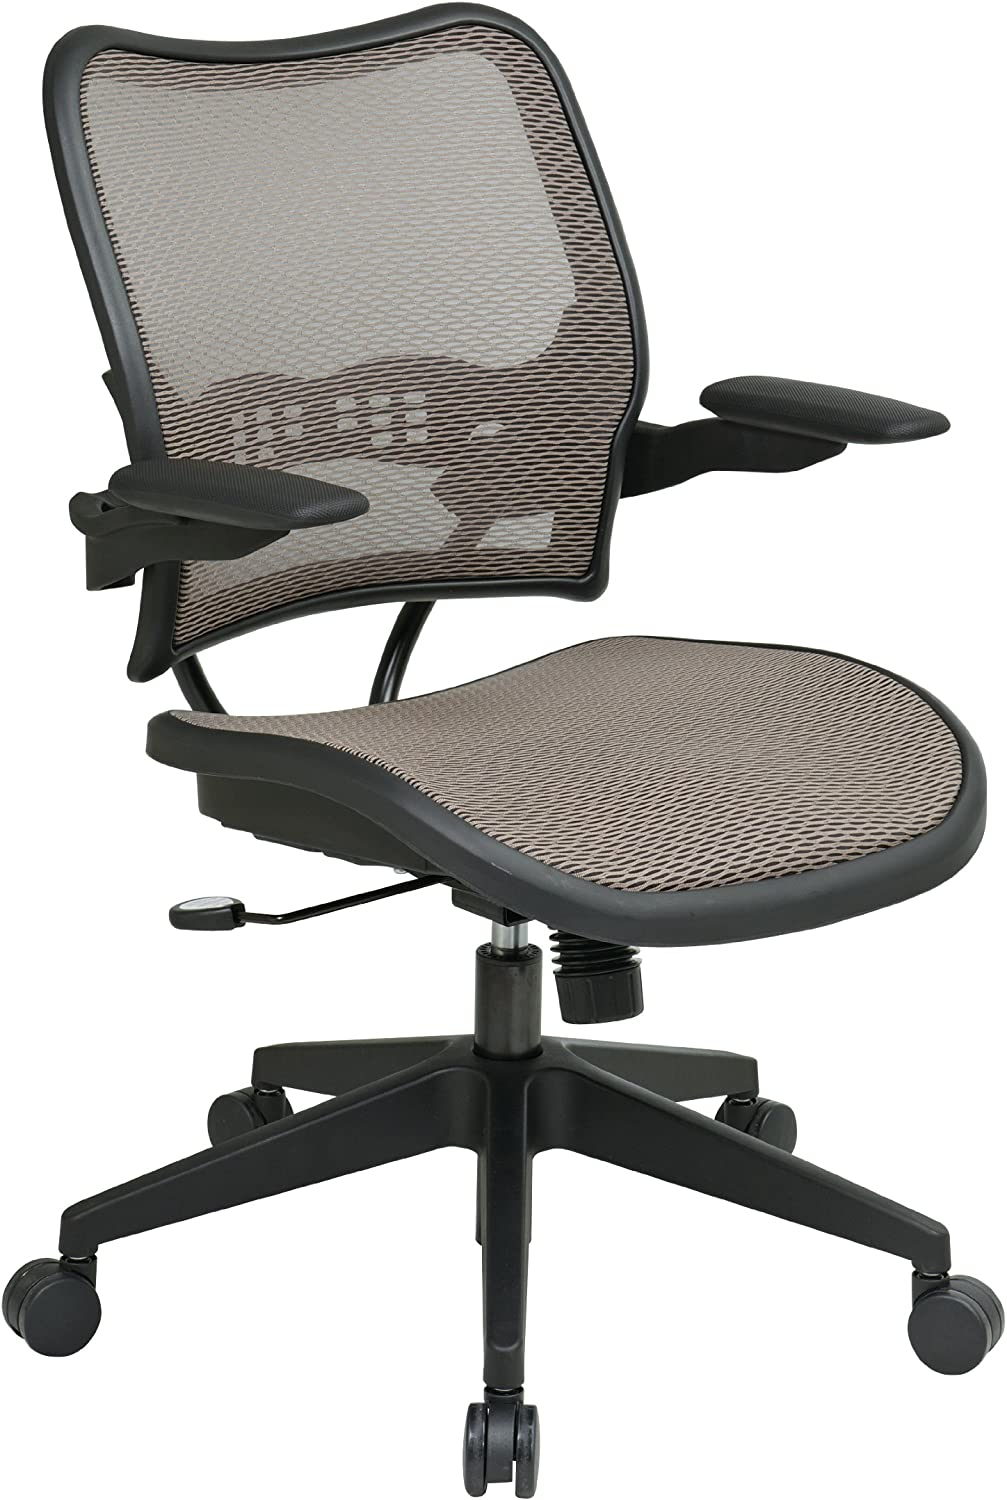 SPACE Seating Deluxe AirGrid Seat and Back, 2-to-1 Synchro Tilt Control and Cantilever Arms Managers Chair, Latte